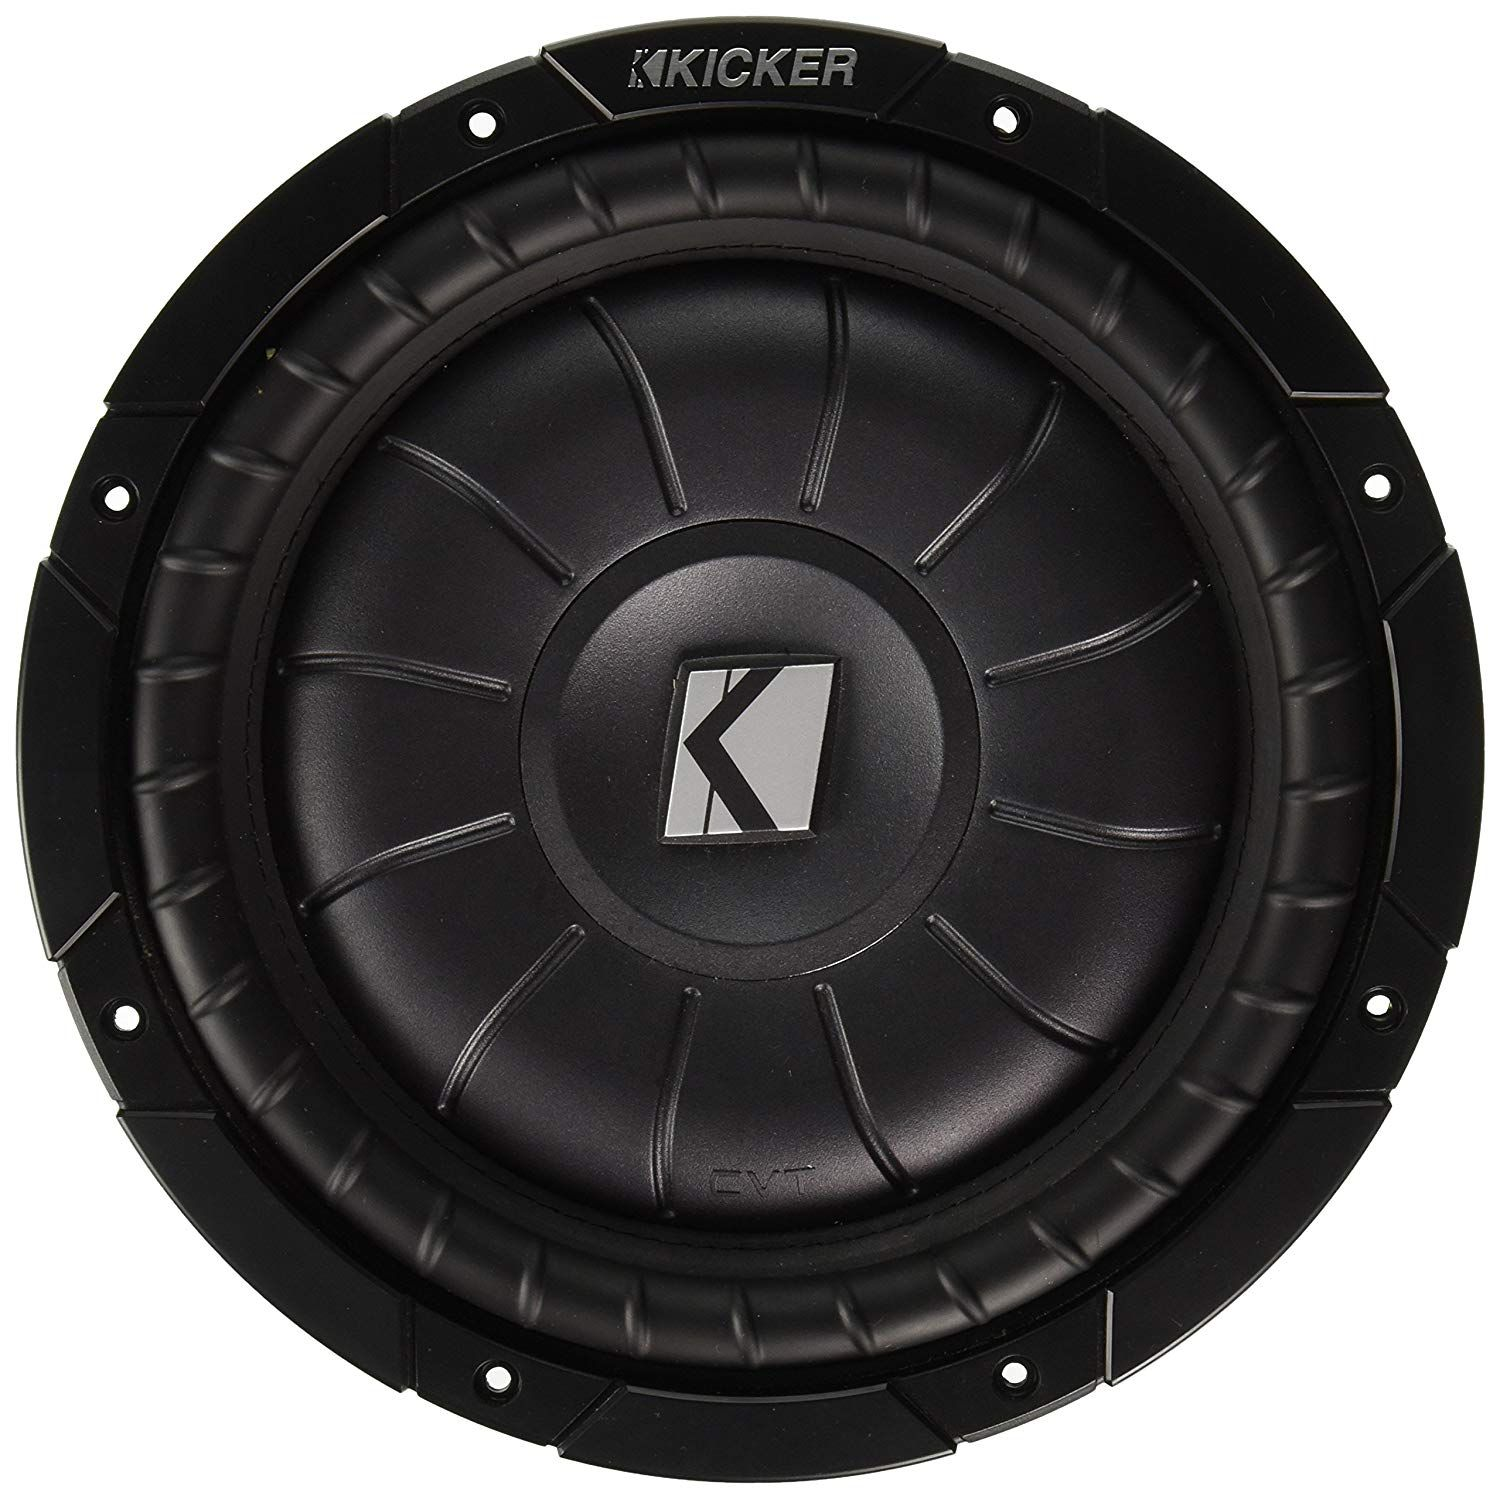 Are You Looking For Best Shallow Mount Subwoofer For Car Sport Car Truck And Also Home Theater For Super Star Music Car Subwoofer Kicker Subwoofer Subwoofer